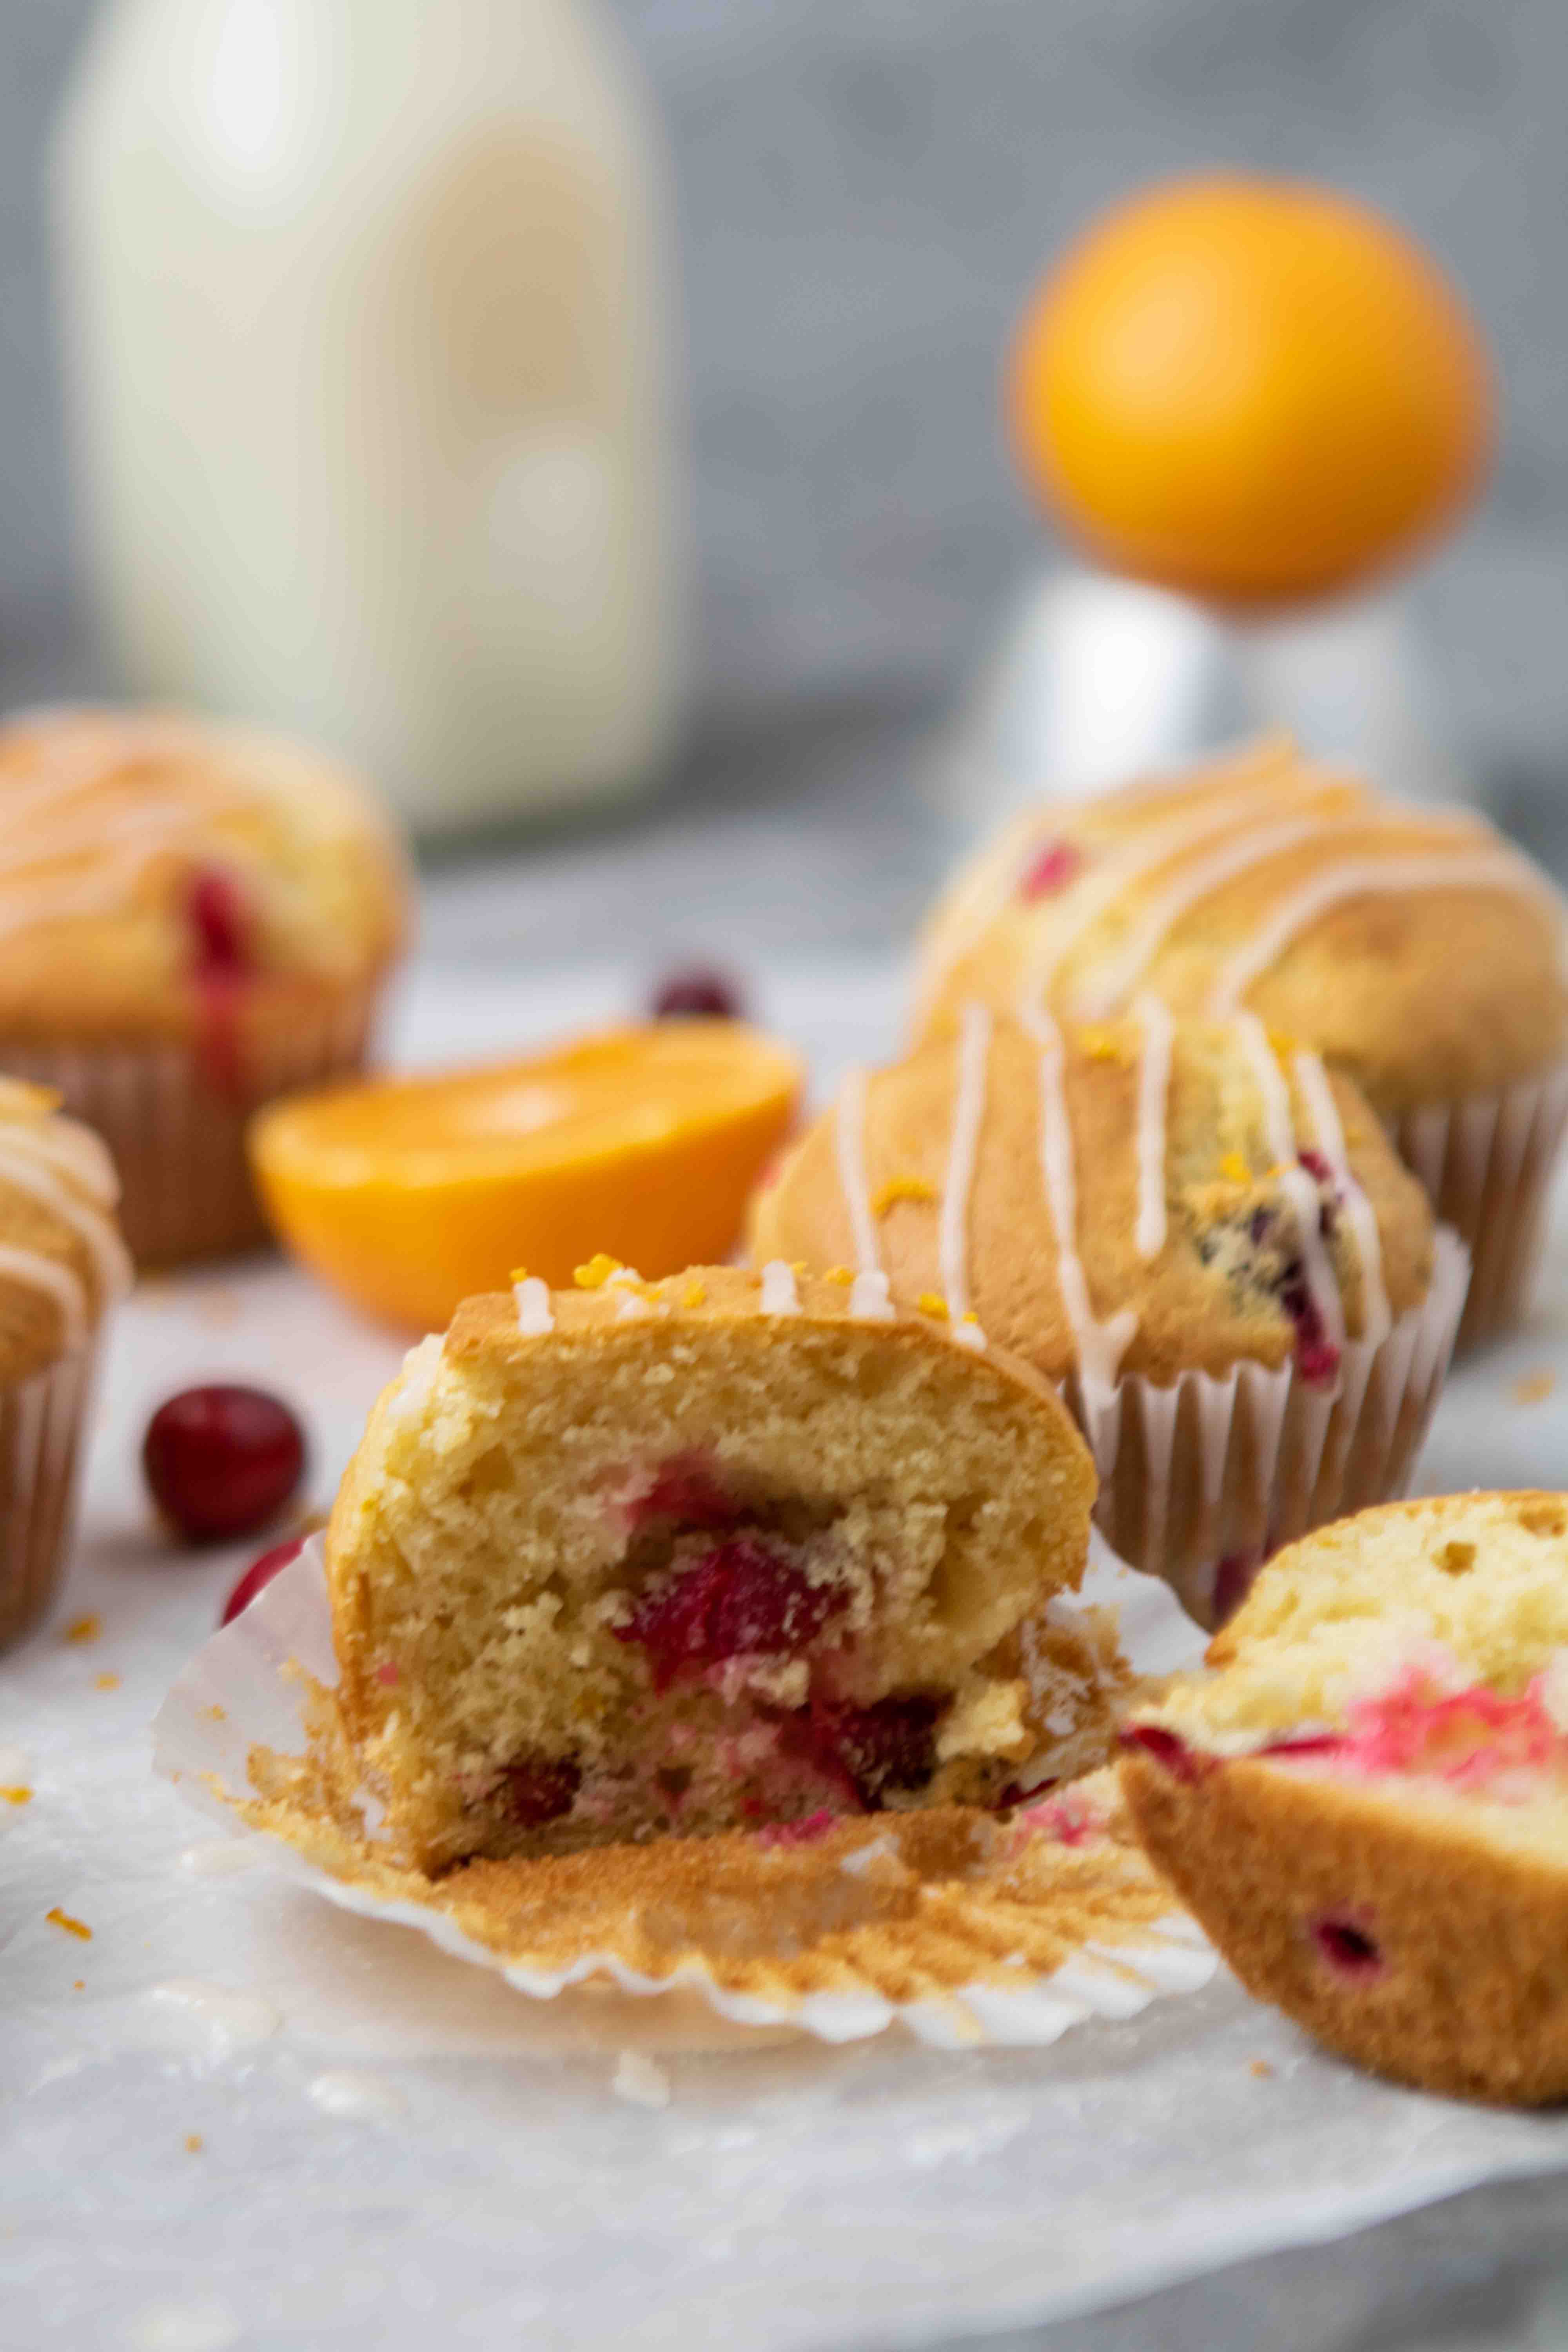 Cranberry orange muffin split in half